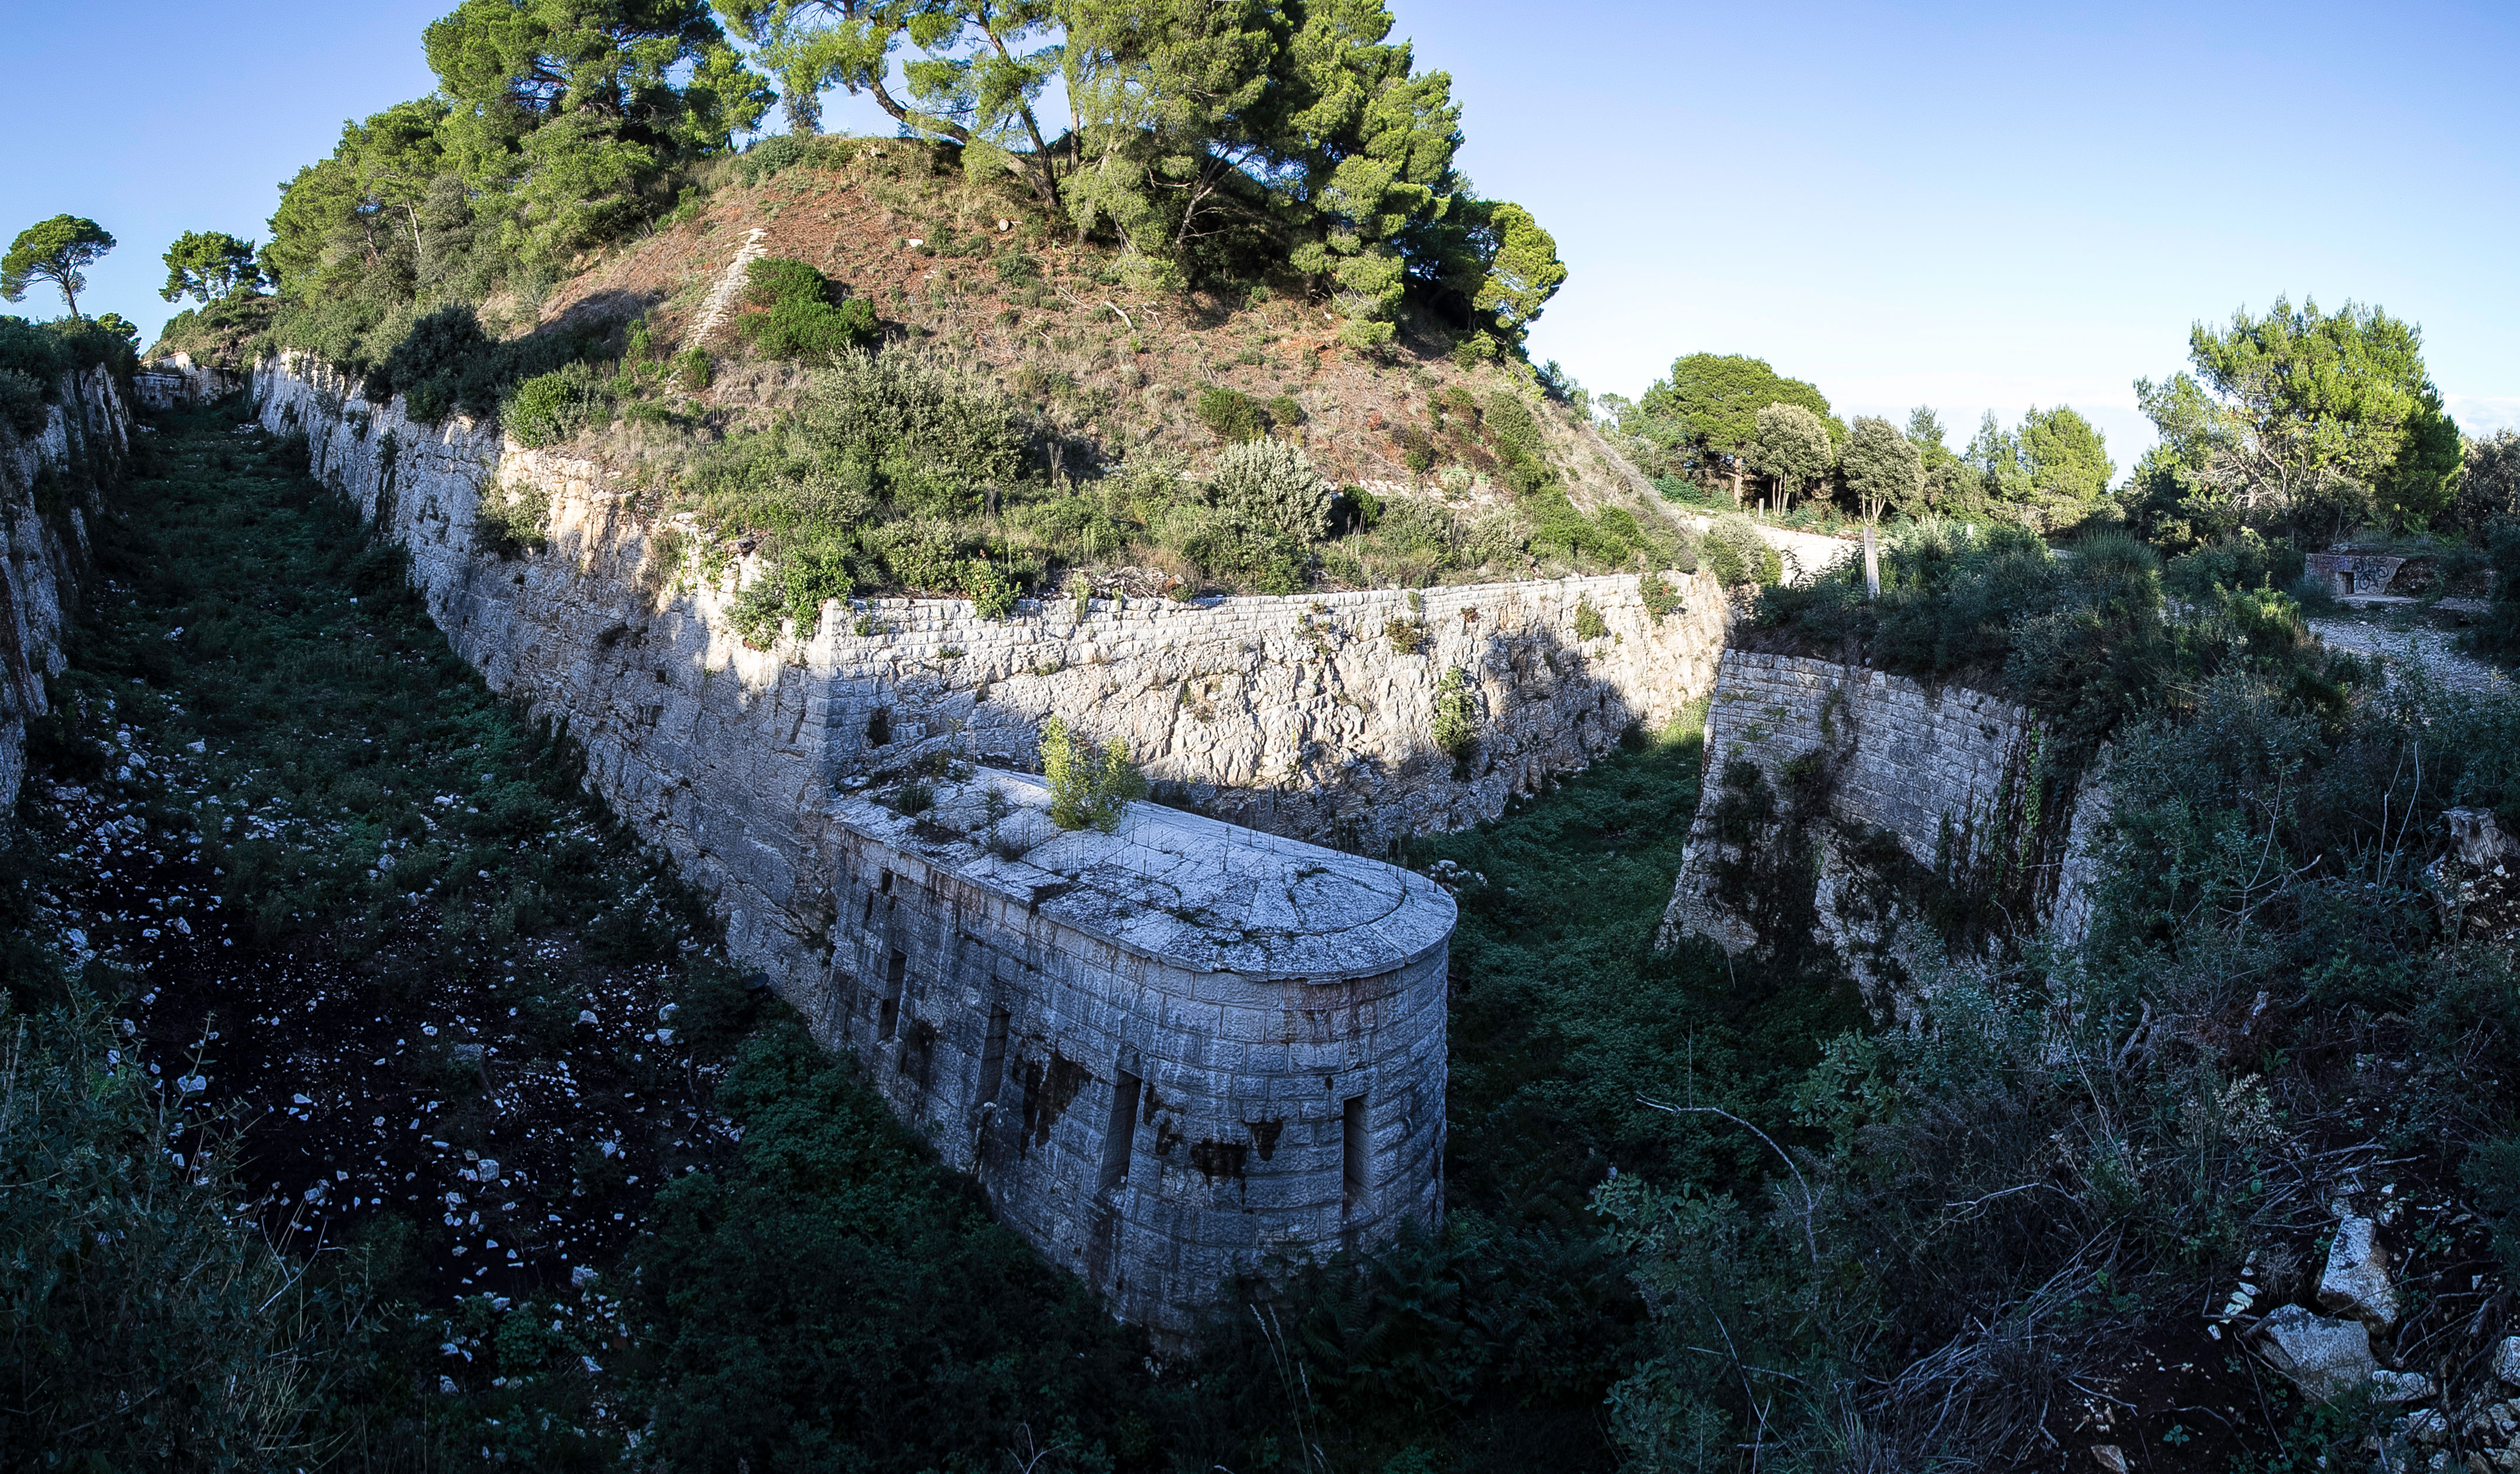 THE BIGGEST AUSTRO-HUNGARIAN FORTIFICATION IN ŠTINJAN NEAR PULA